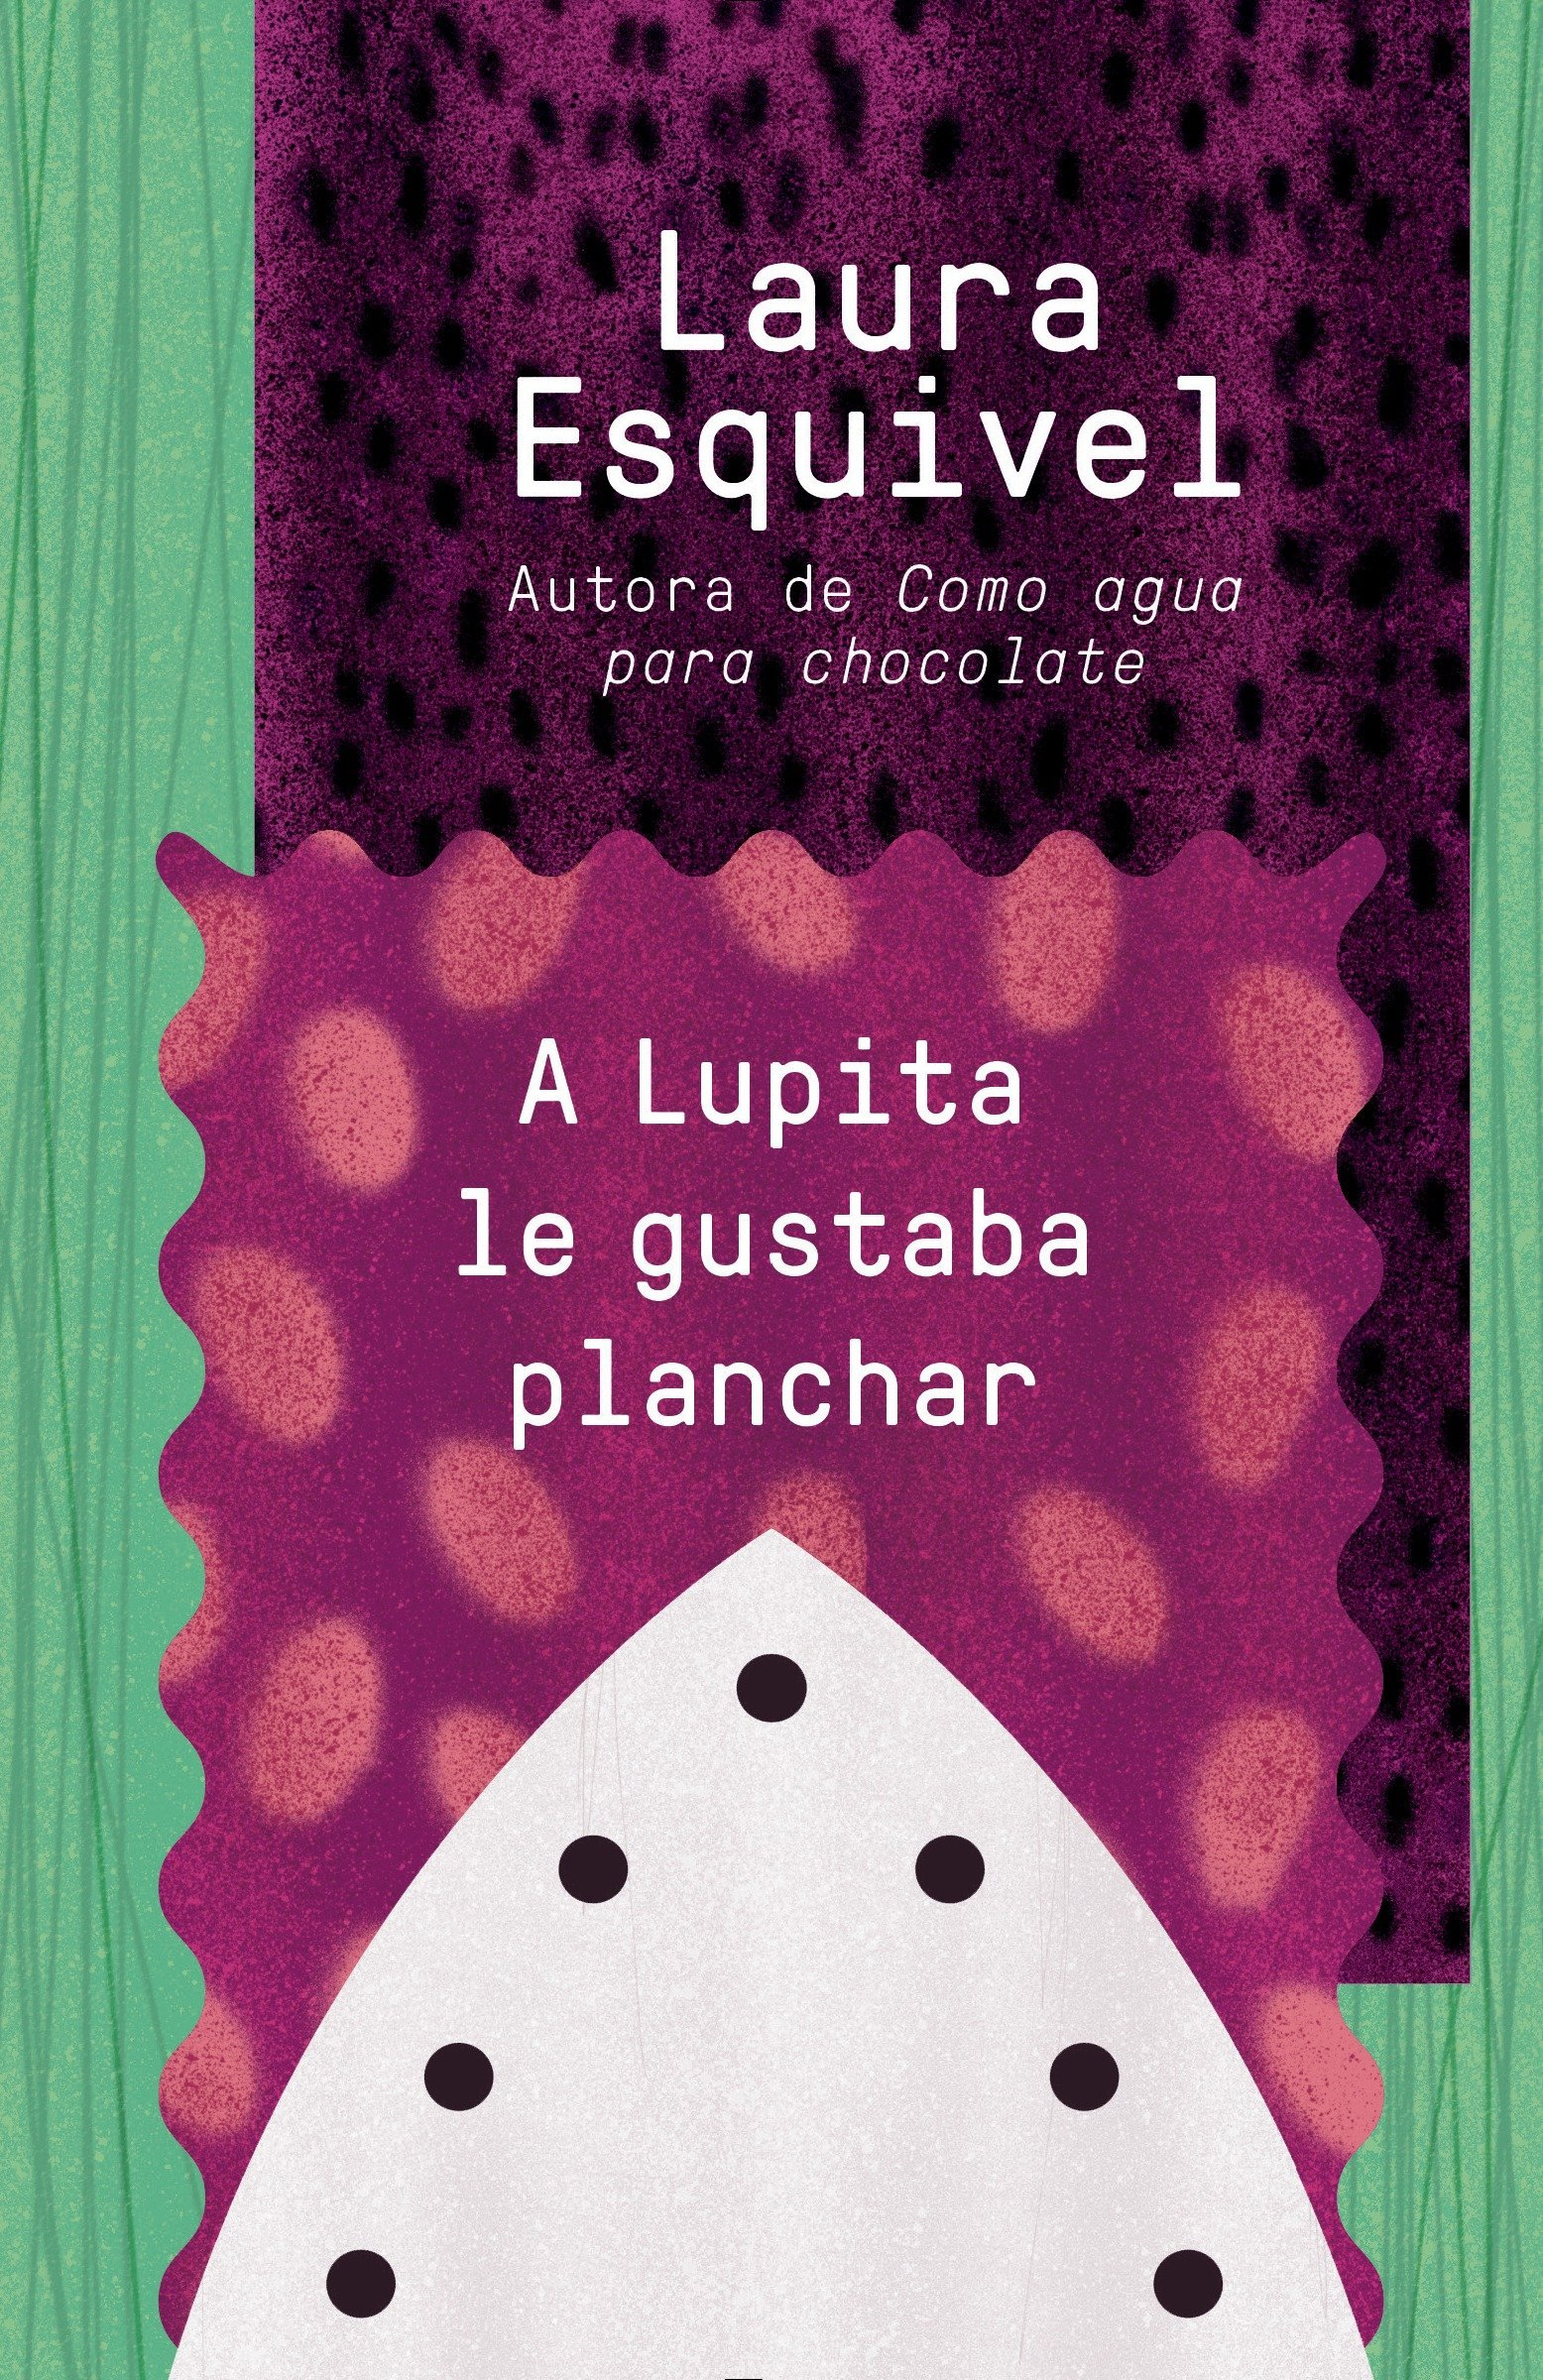 A Lupita Le Gustaba Planchar Lupita Always Liked To Iron Esquivel Laura 9781101969847 Books Amazon Ca